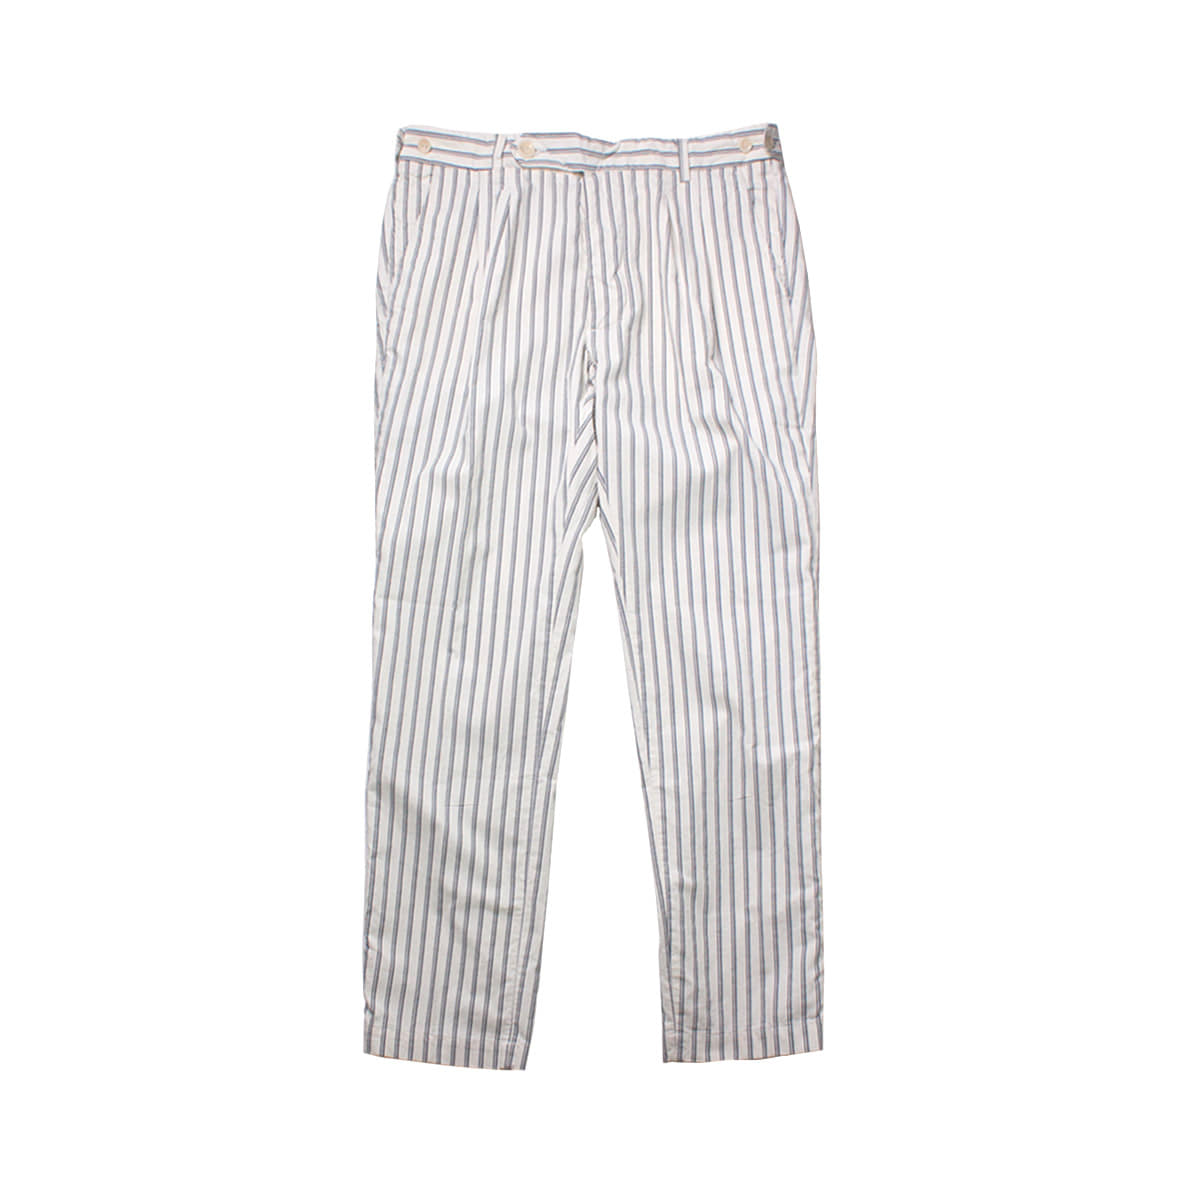 [EAST HARBOUR SURPLUS] GRAYER STRIPE PANTS 'GRAY